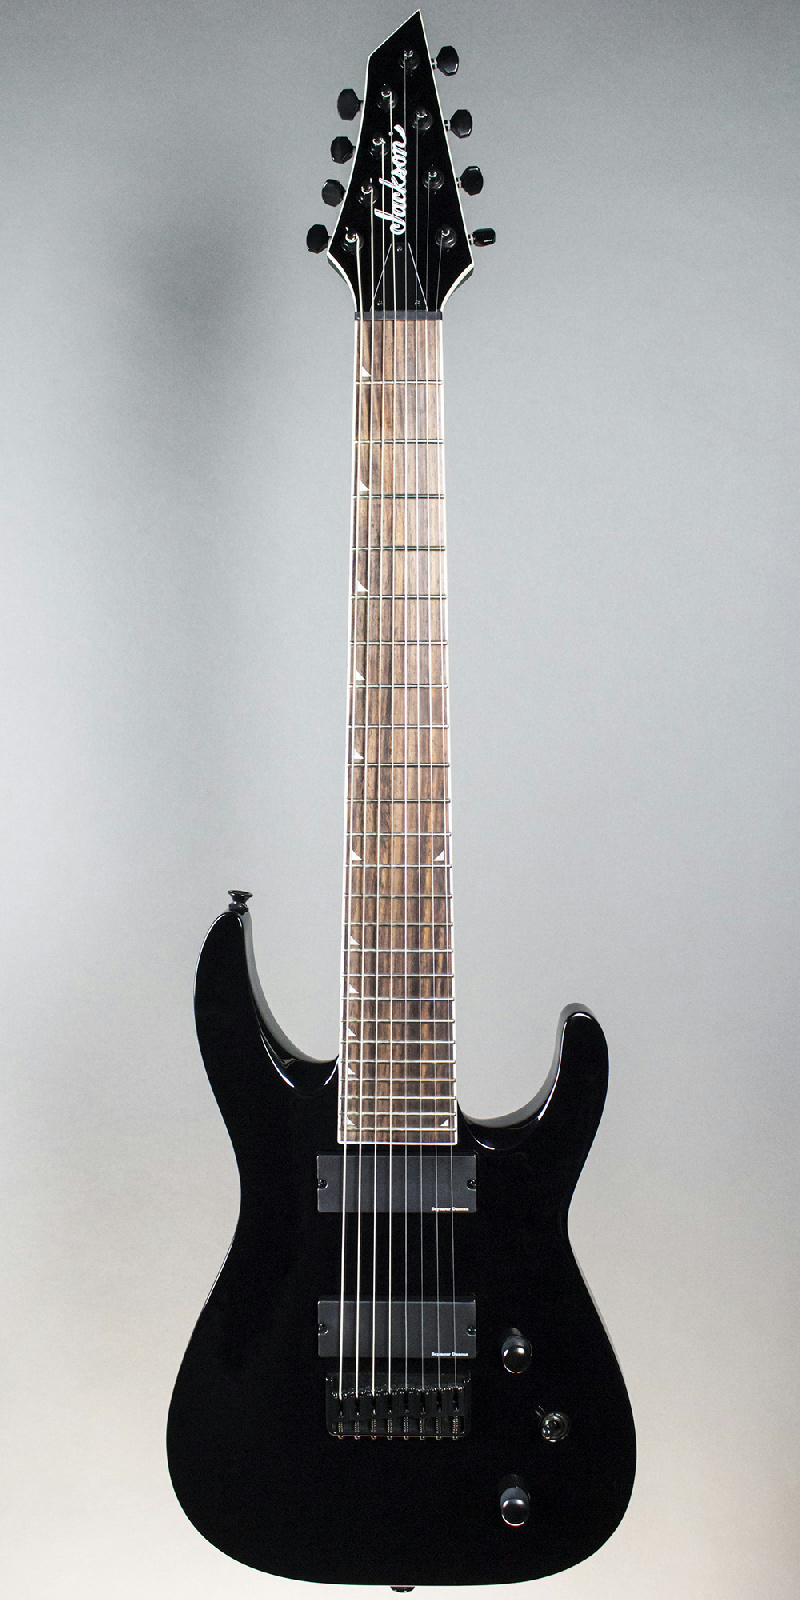 jackson slathxsd 3 8 8 string soloist electric guitar. Black Bedroom Furniture Sets. Home Design Ideas